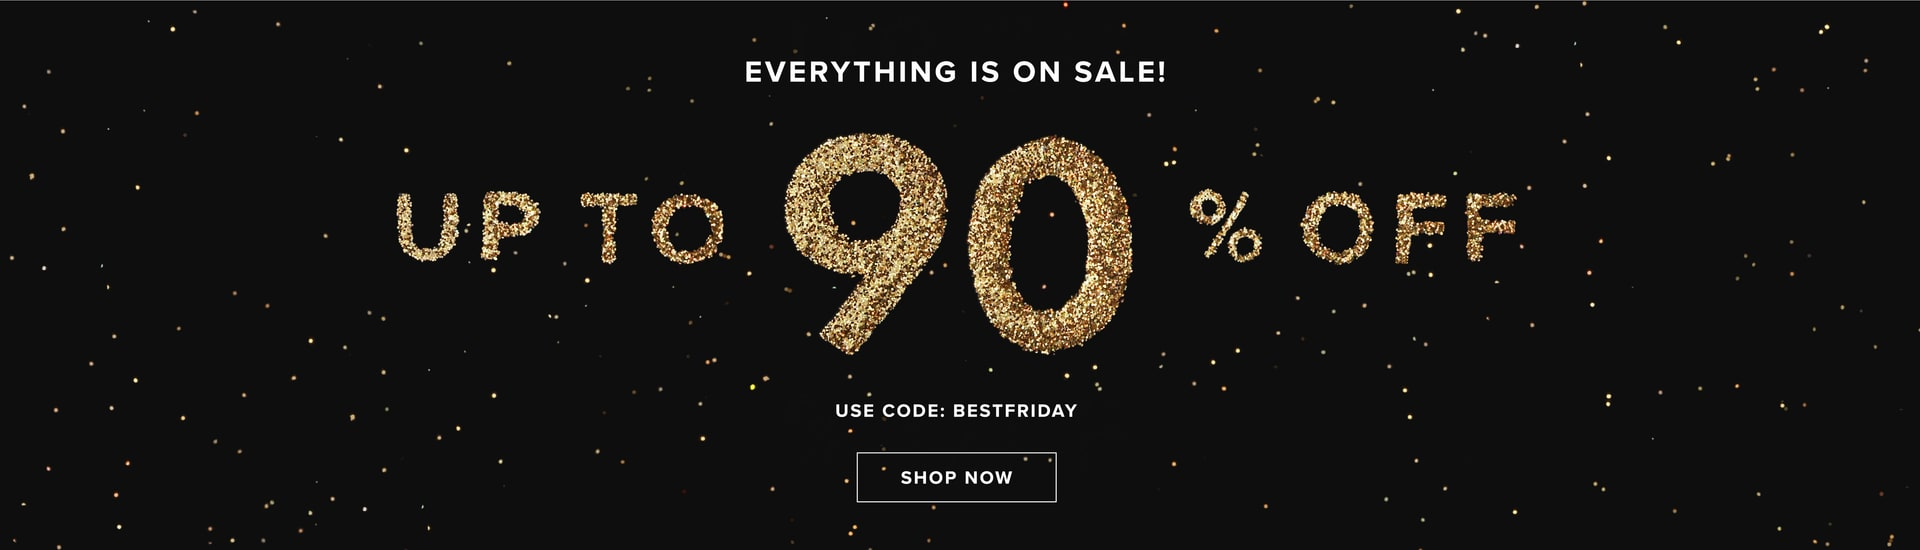 Black Friday continues! Save up to 90% off our Black Friday category.